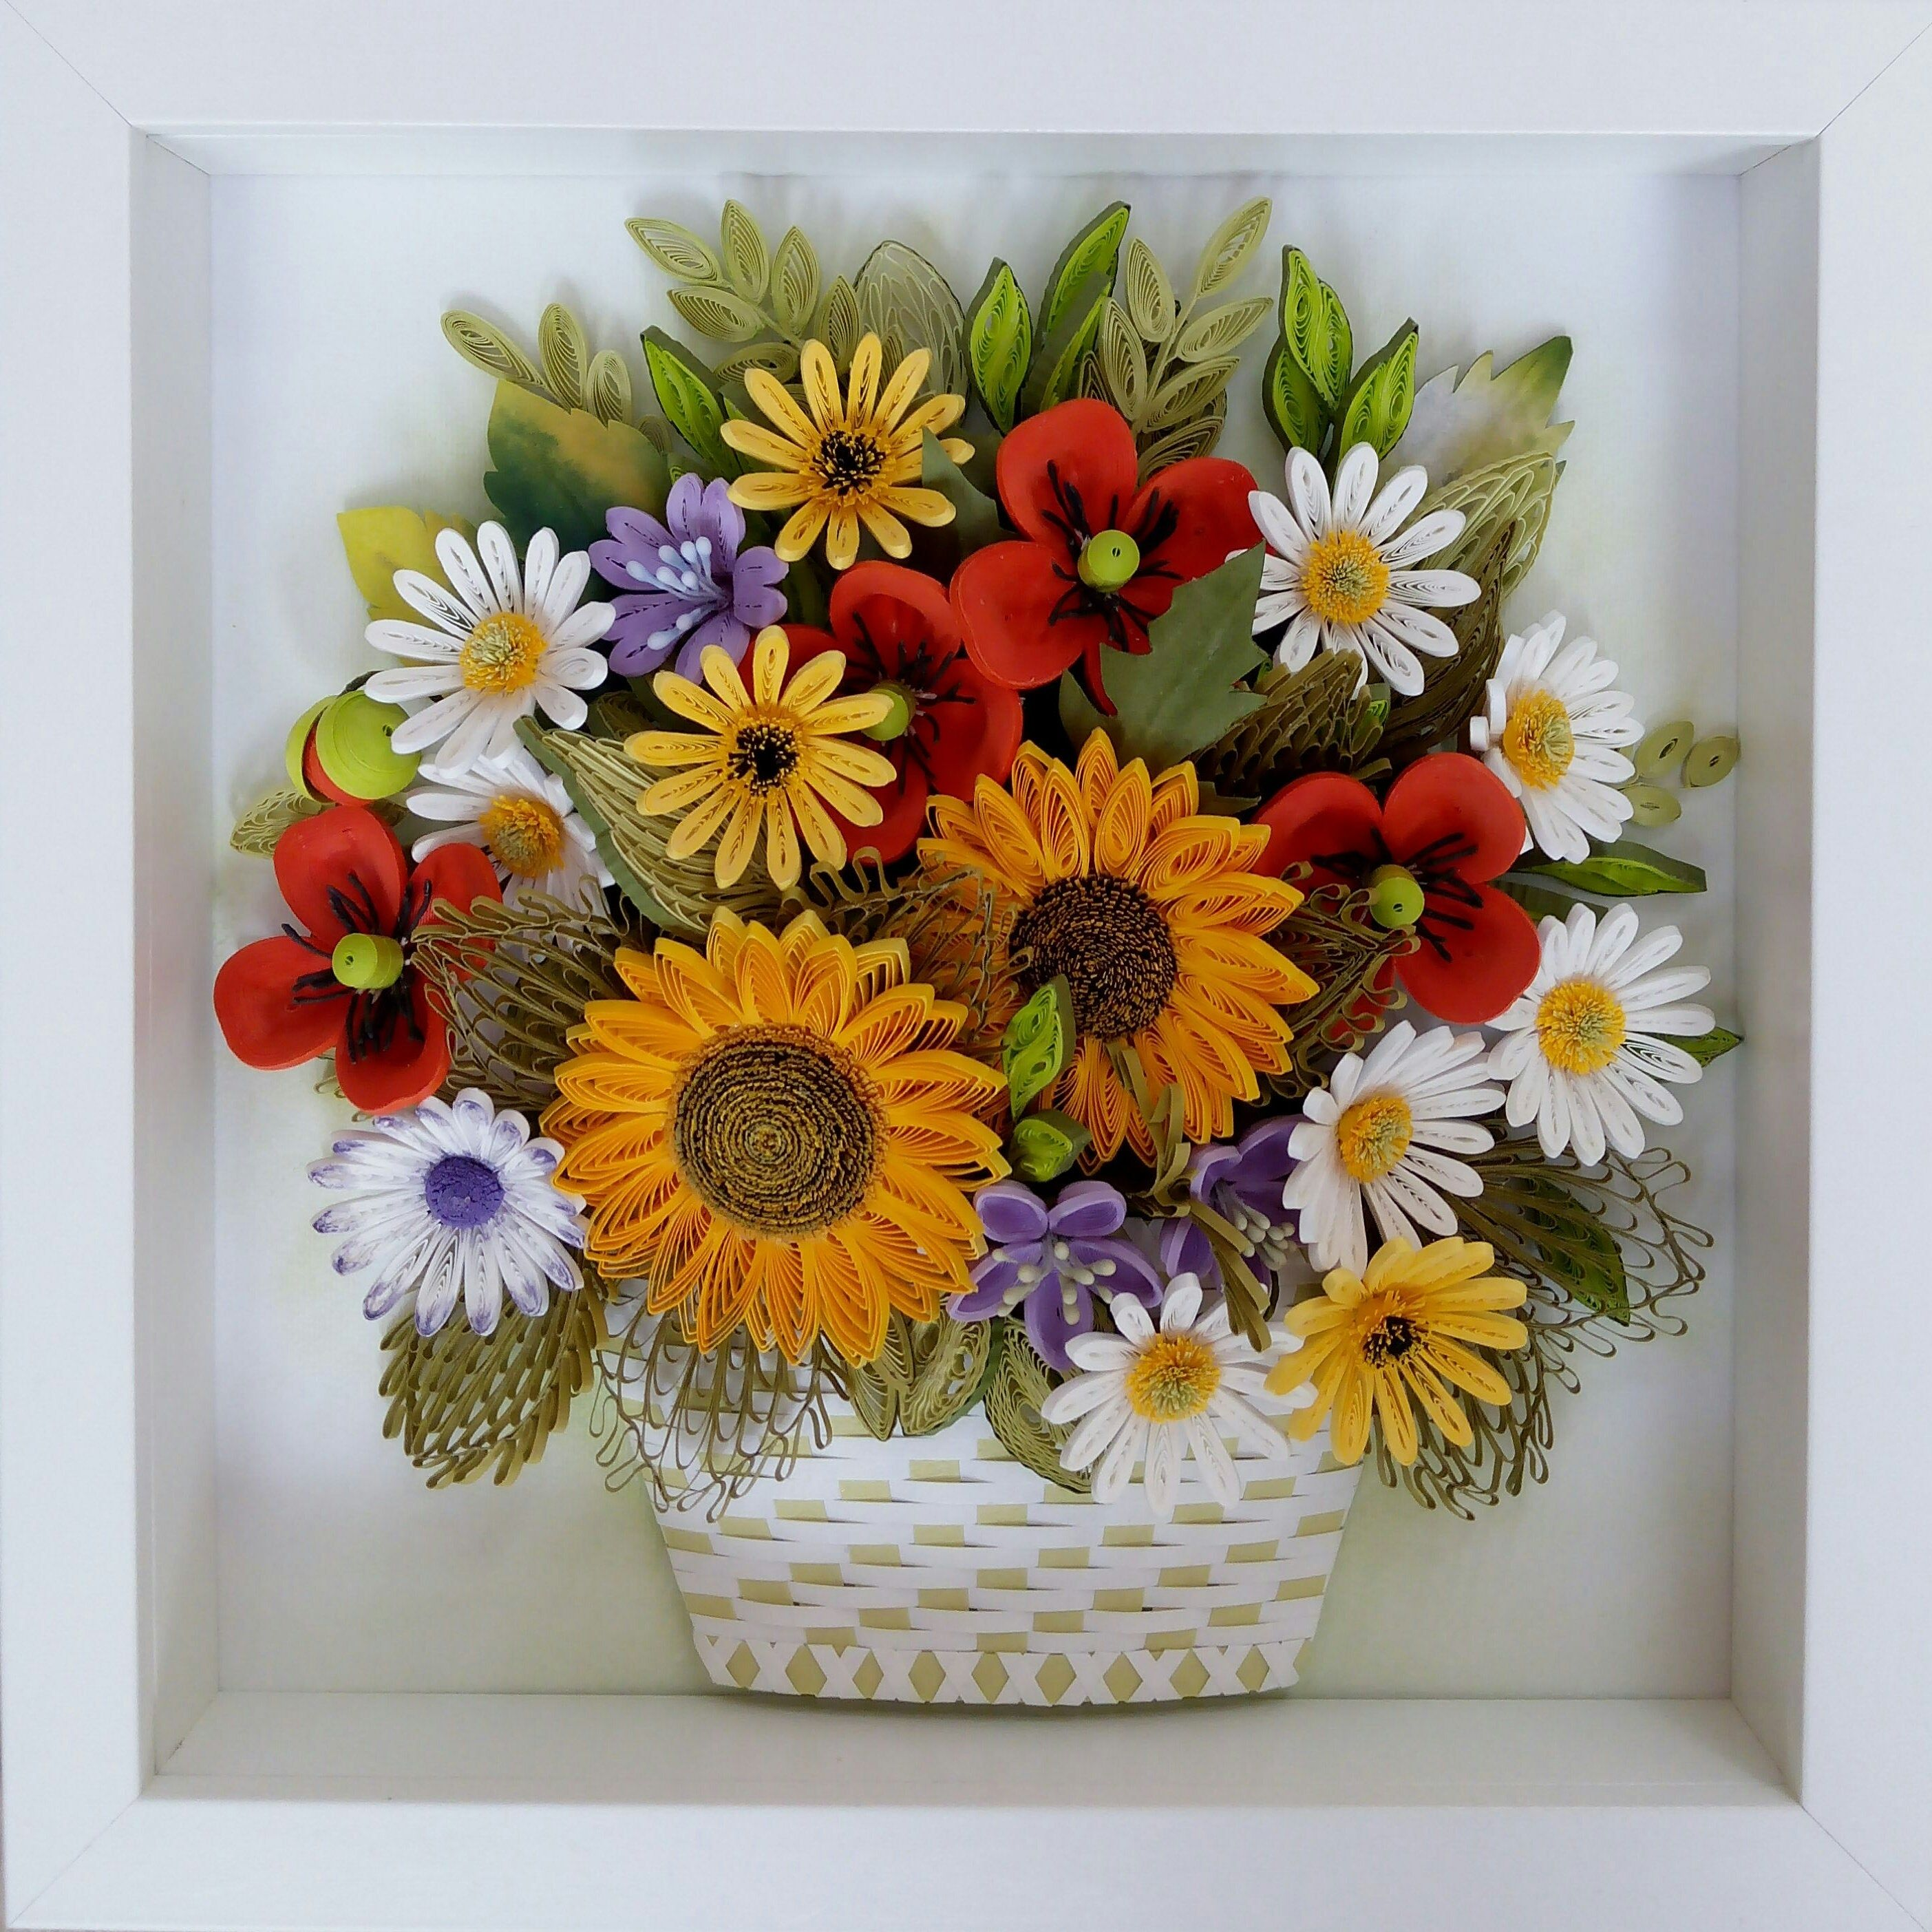 Quilling Art 3d Paper Quilling Bouquet Of Meadow Flowers In Etsy Paper Quilling Flowers Quilling Art Paper Quilling